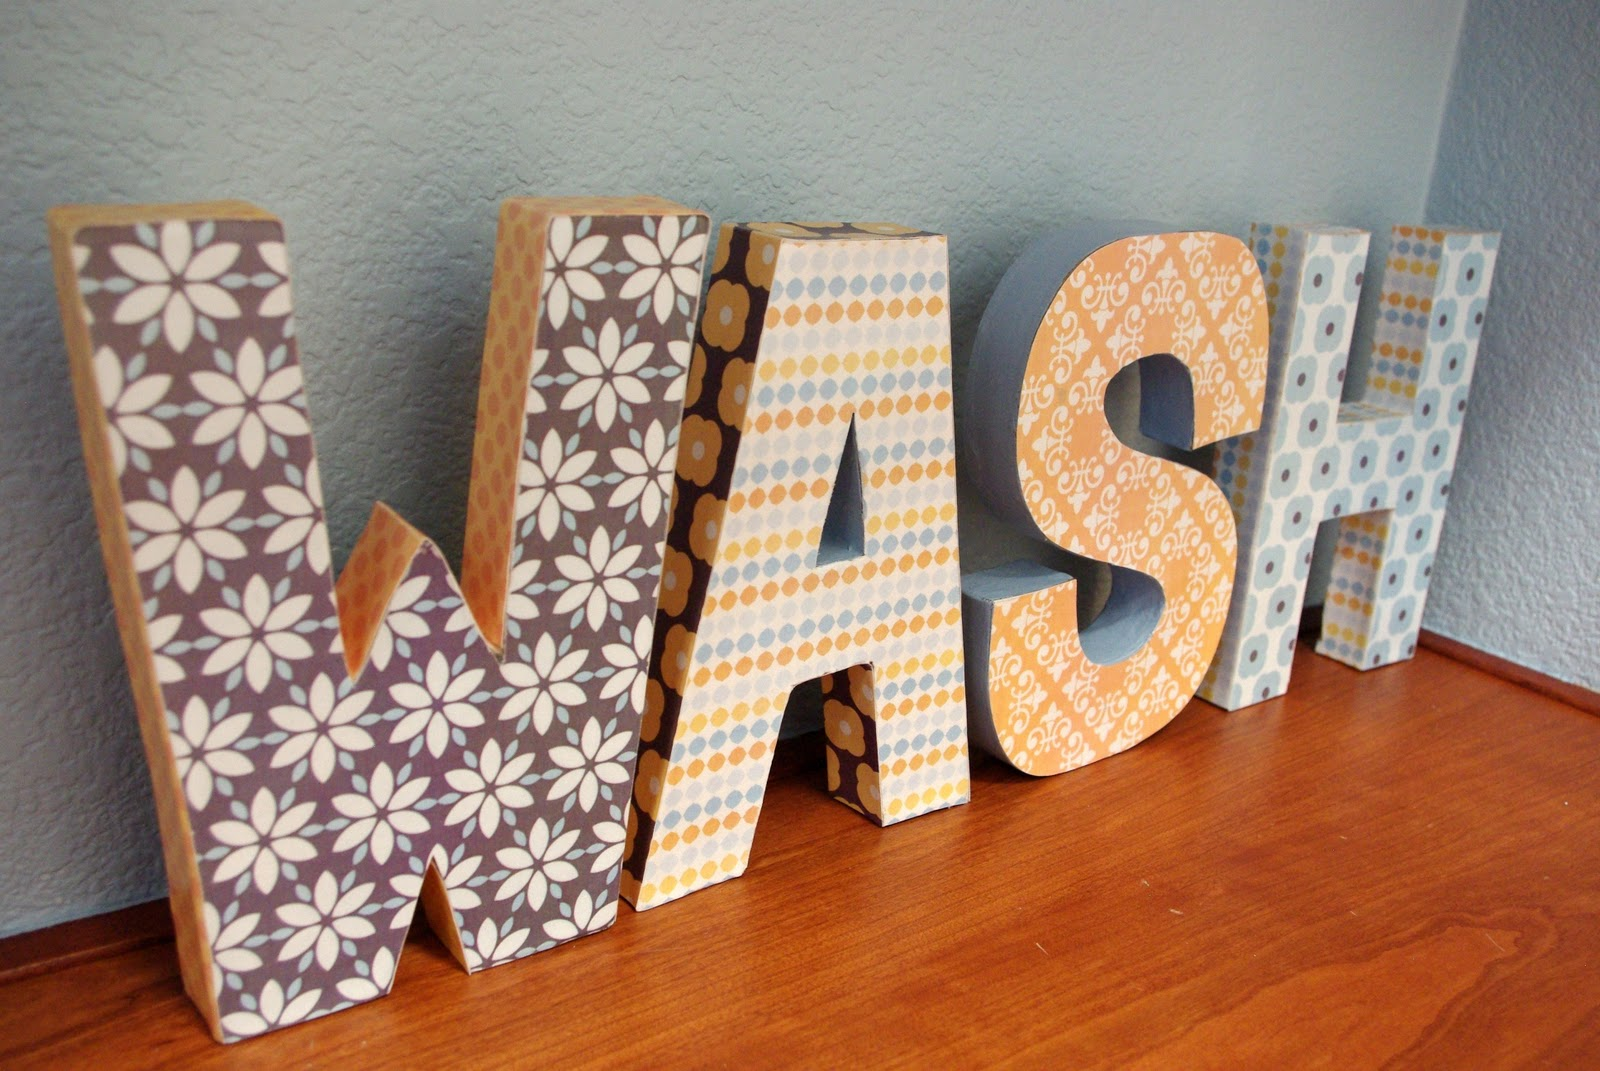 Print Candee} Paper Mache Letters - Happiness is Homemade